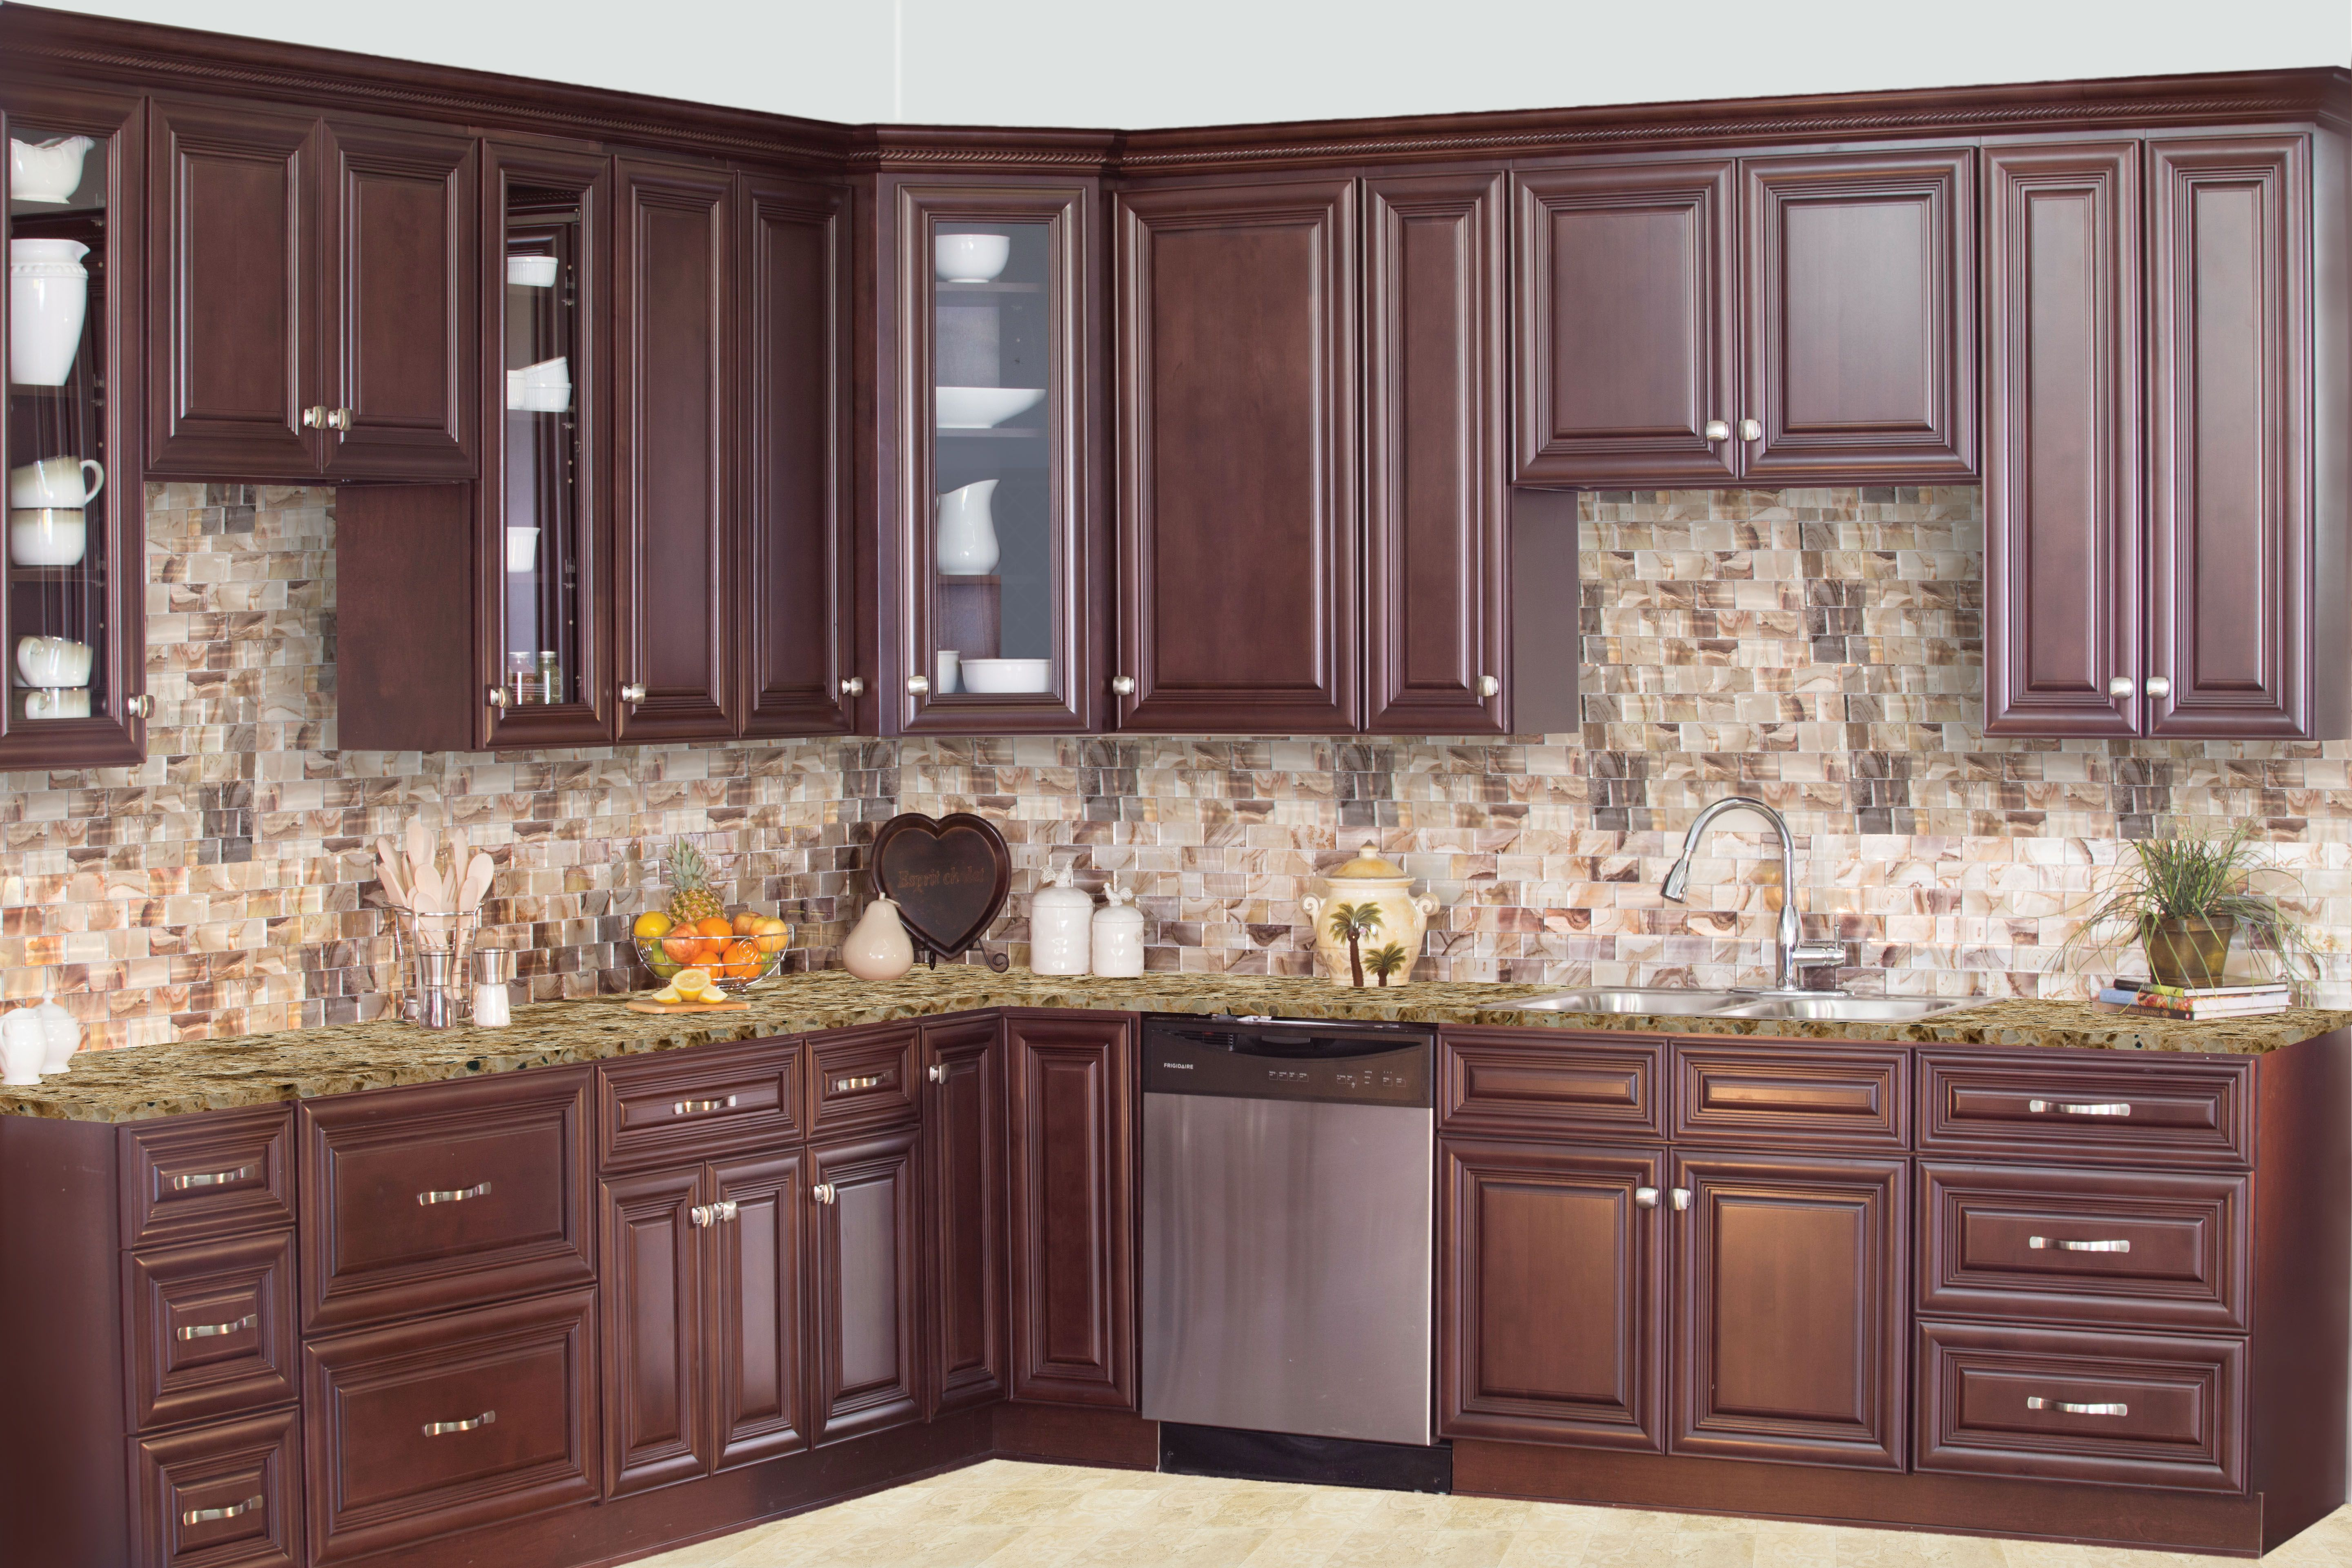 Charmant Cabinets To Go Is Selling Palm Beach Dark Chocolate, Westminster Glazed  Toffee, And Montauk Cherry For 35% Off! Visit Www.cabinetstogo.com Or ...